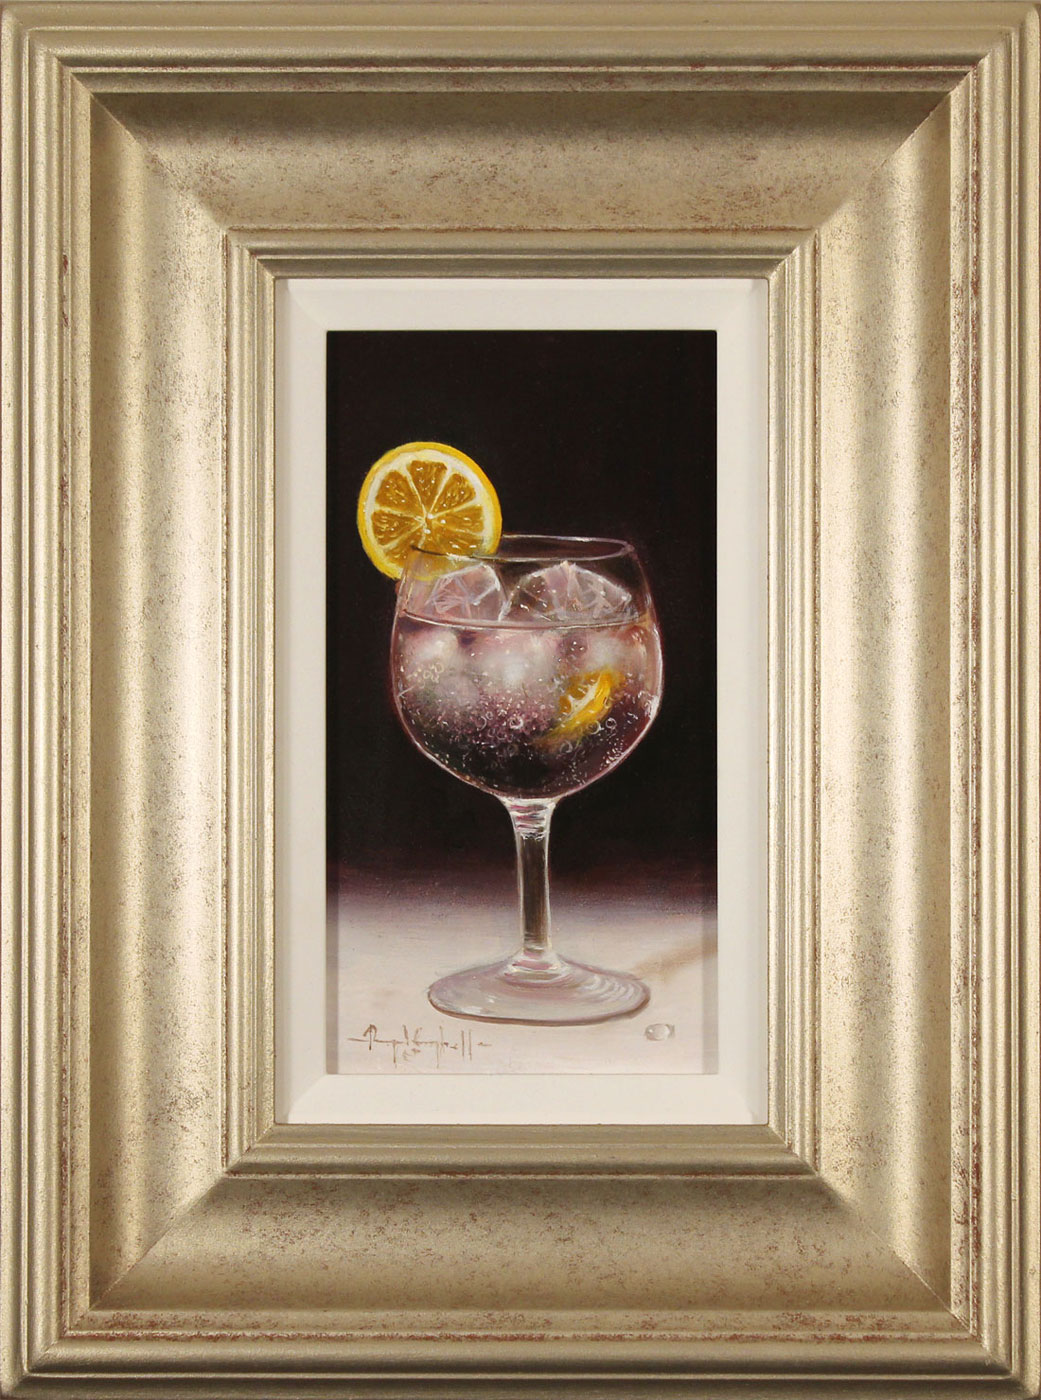 Raymond Campbell, Original oil painting on panel, Slice of Lemon. Click to enlarge